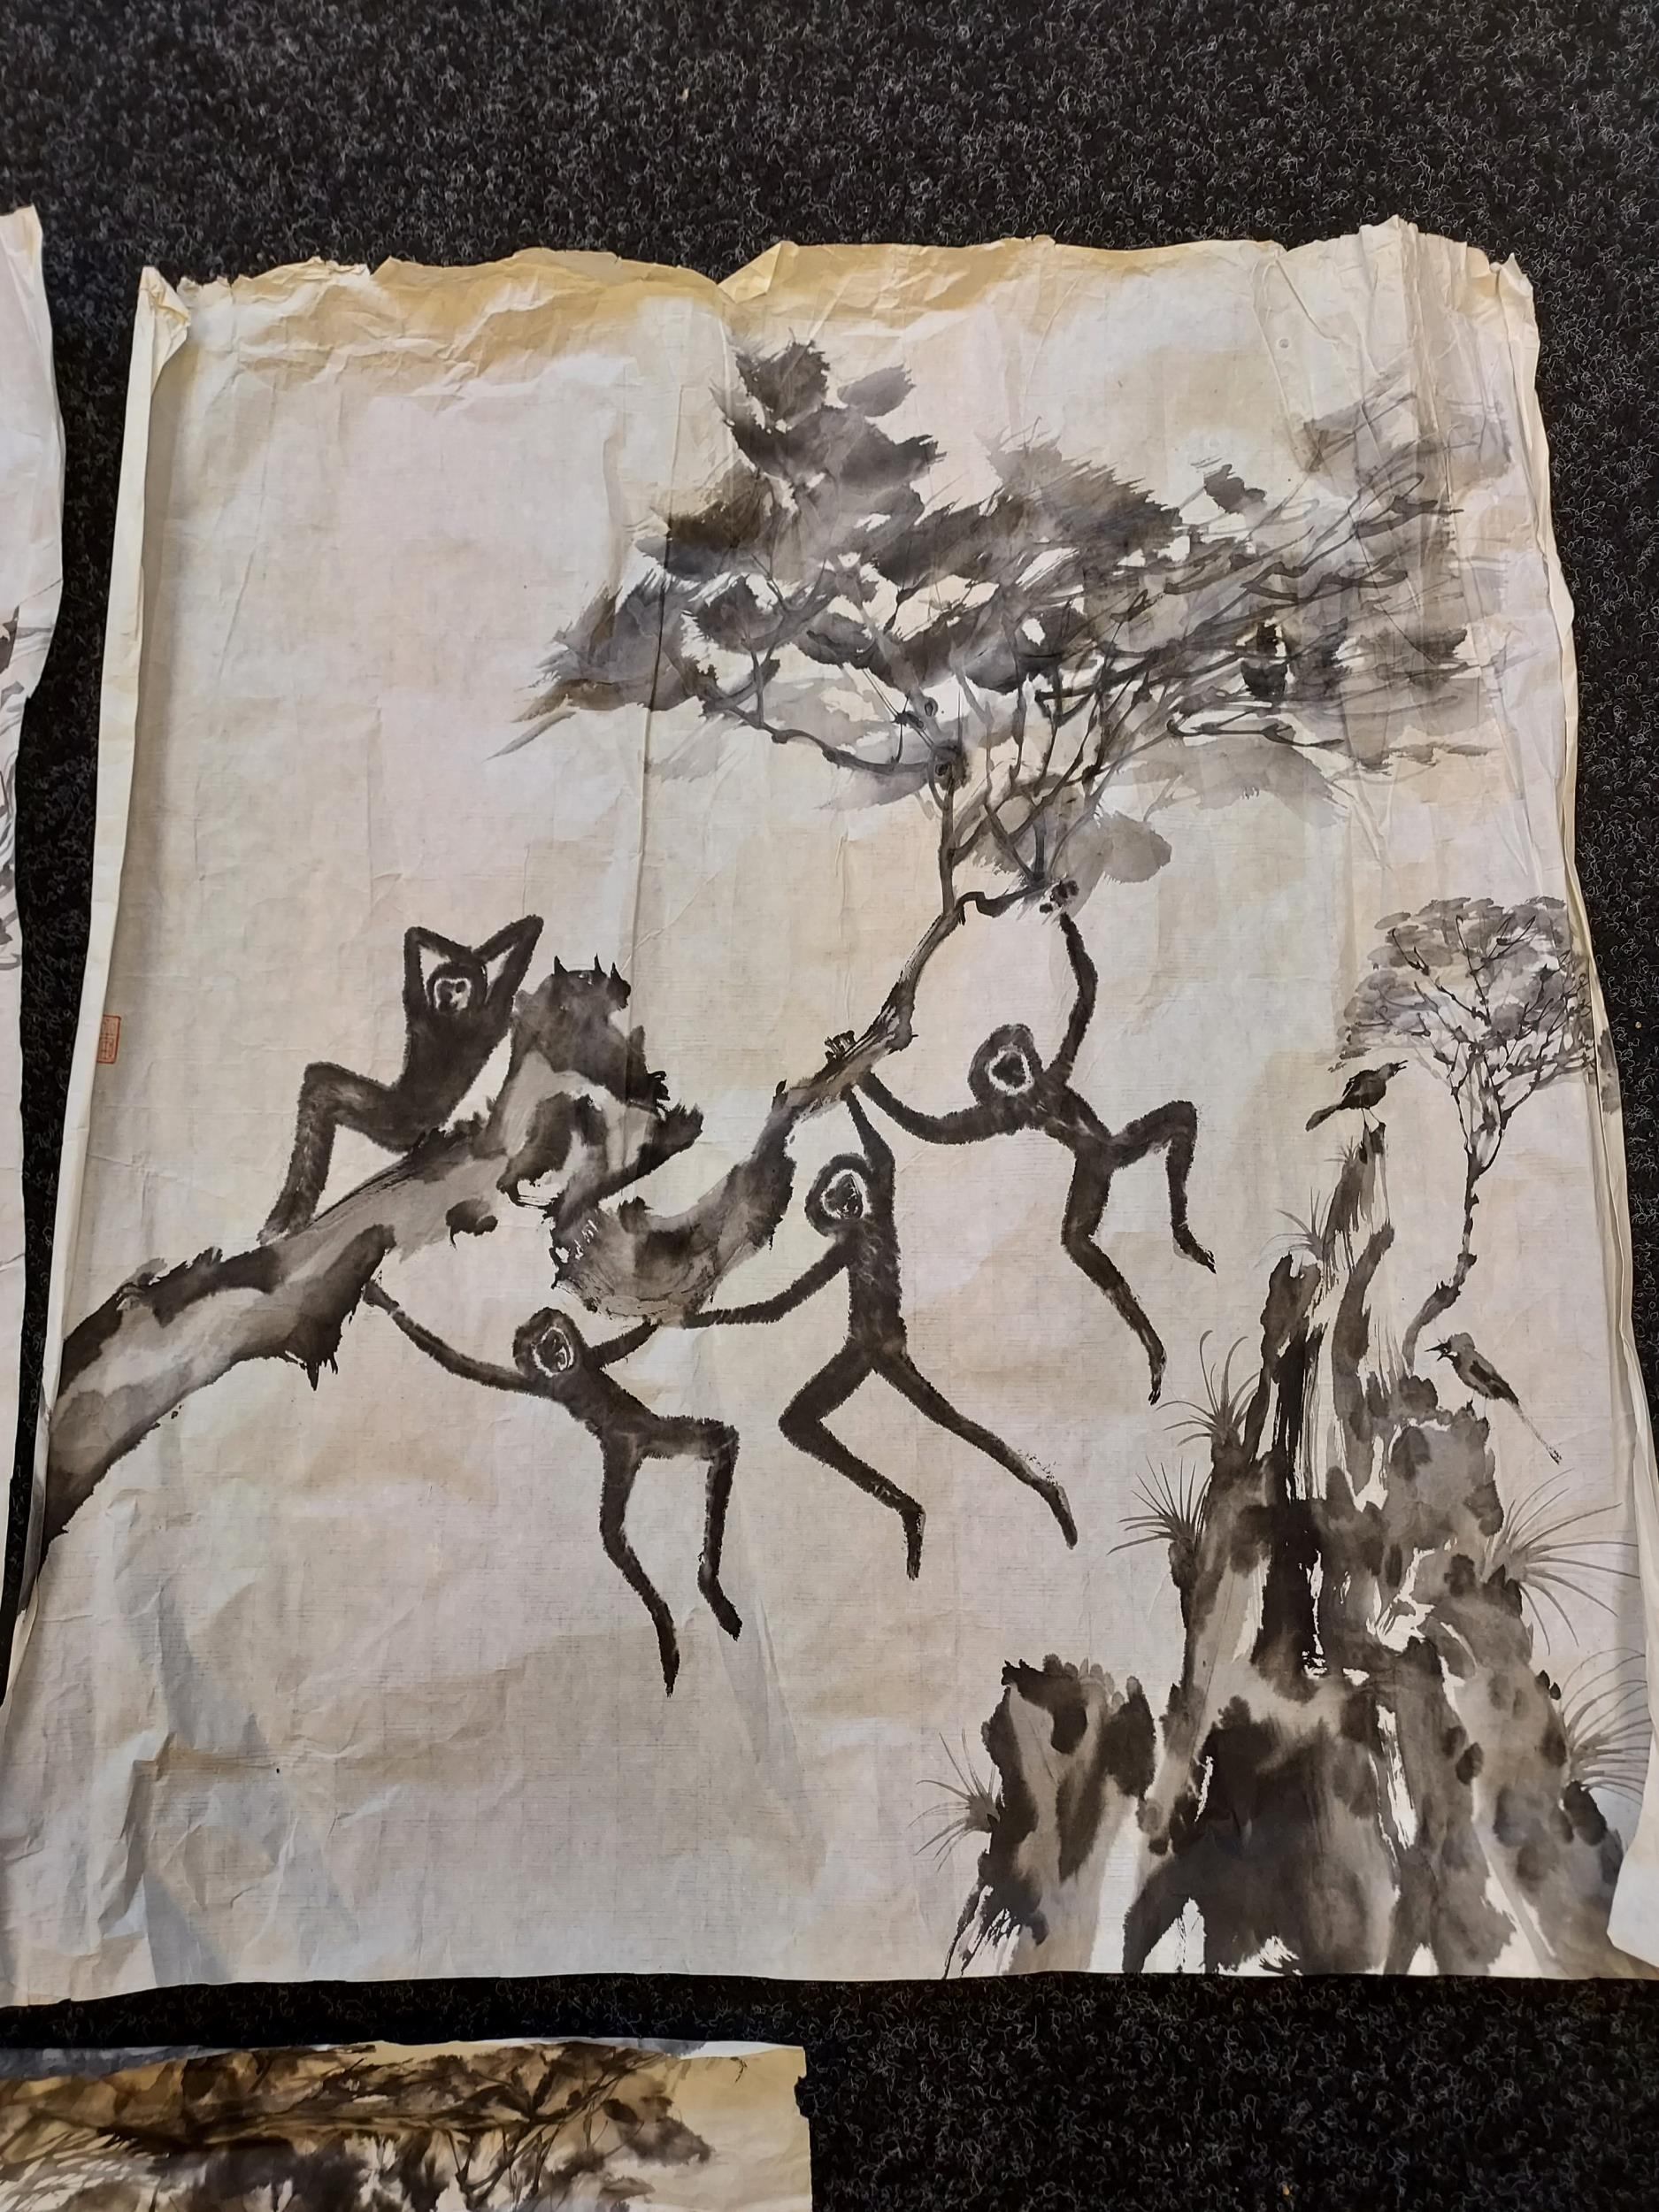 A selection of Japanese ink wash paintings depicting various monkey figures [signed by artist] - Image 3 of 4